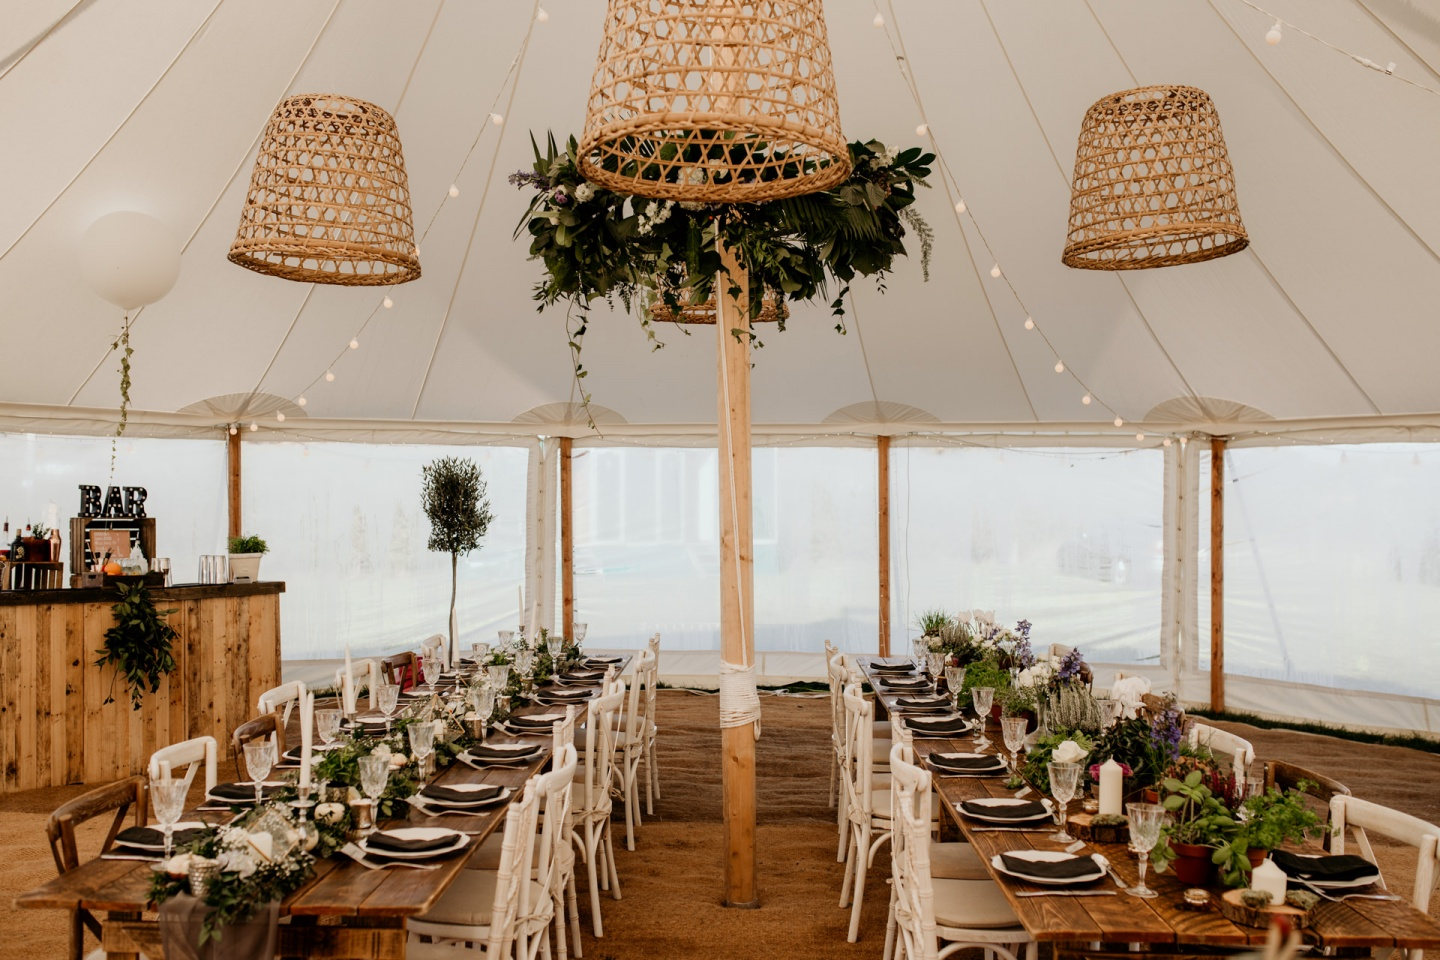 A marquee wedding set up in rustic style